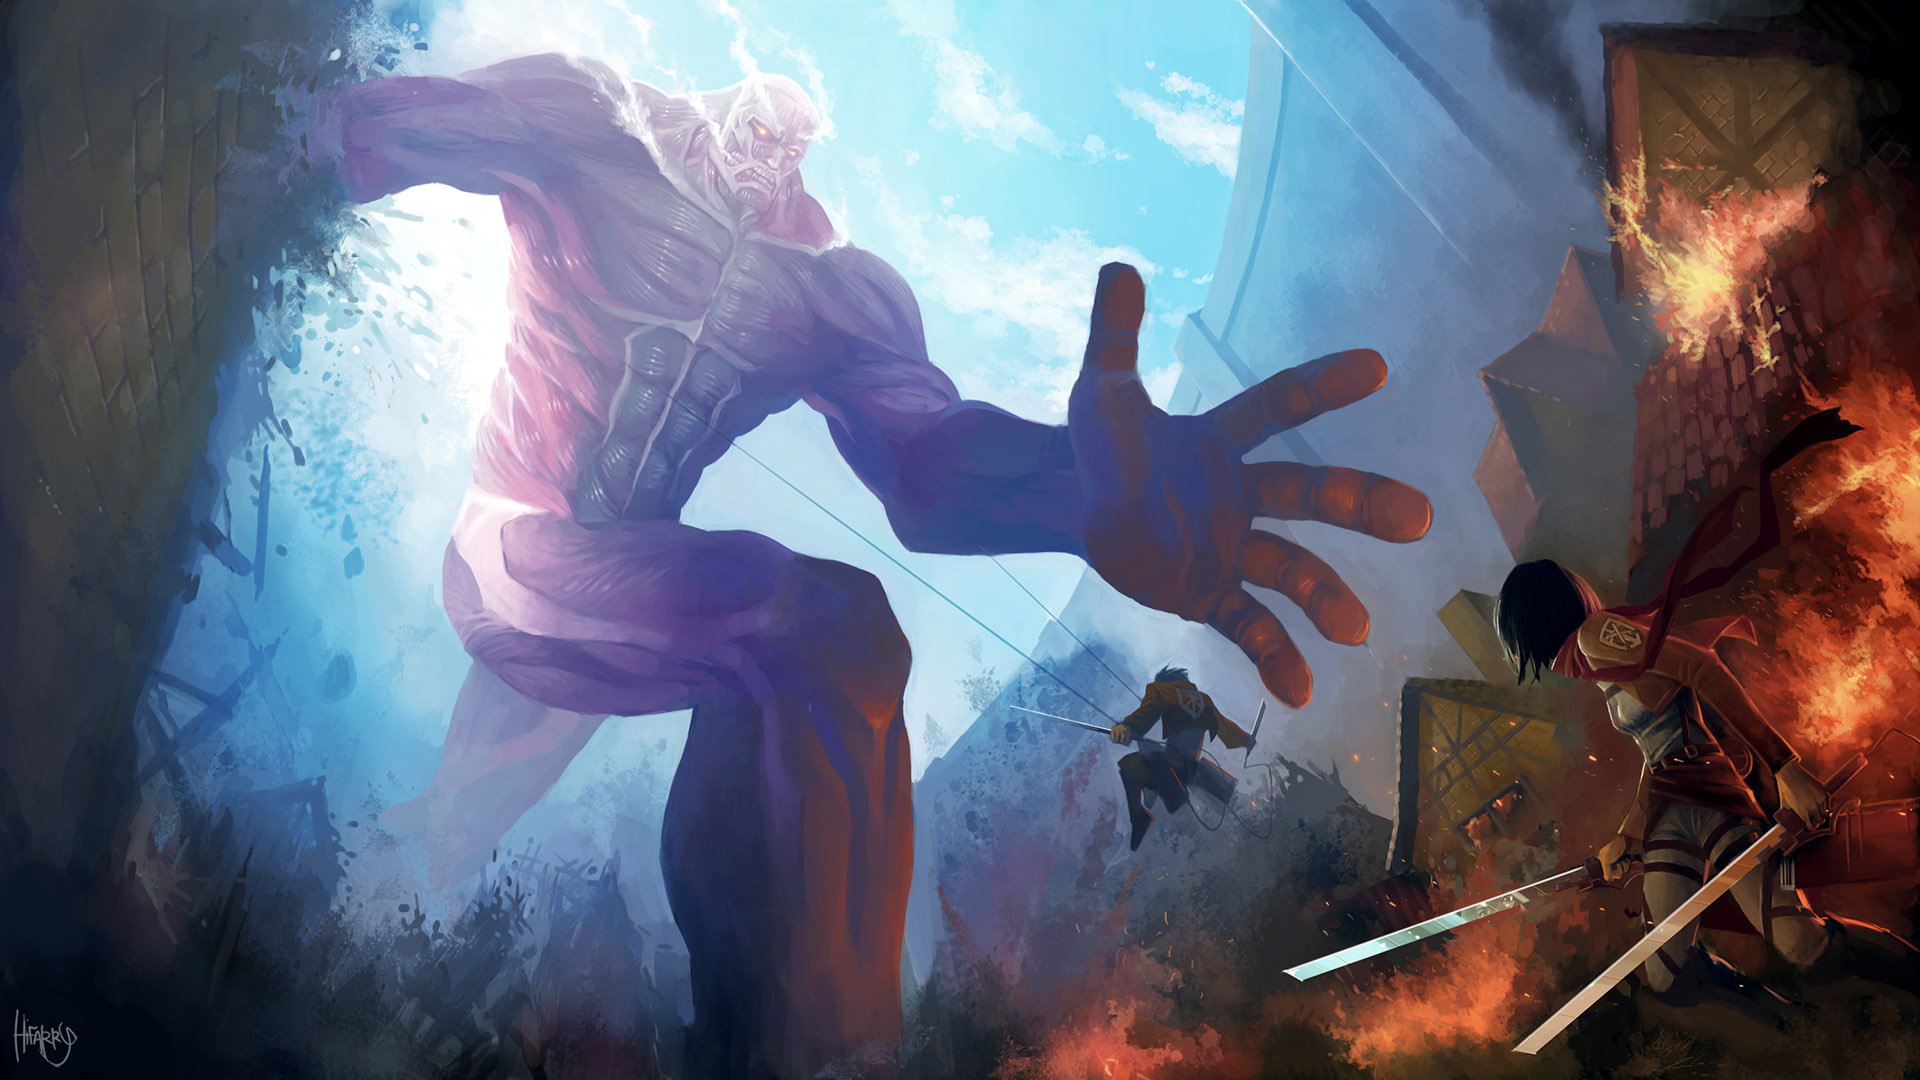 Awesome Attack On Titan Free Wallpaper Id 206073 For Hd 1080p Pc